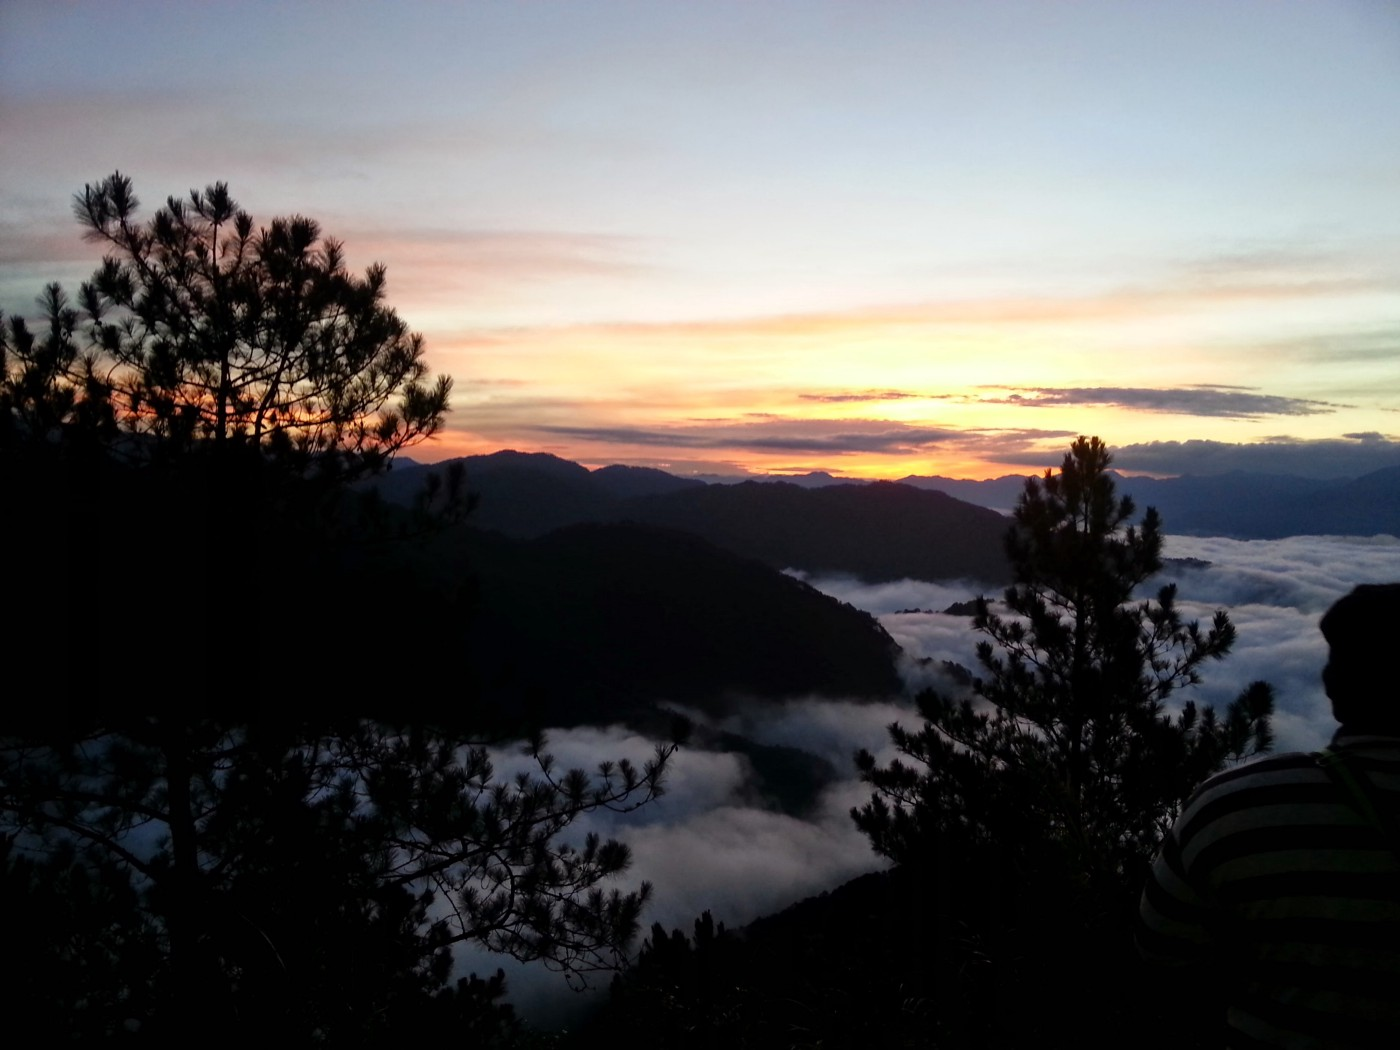 Sunrise in the mountains above the clouds.